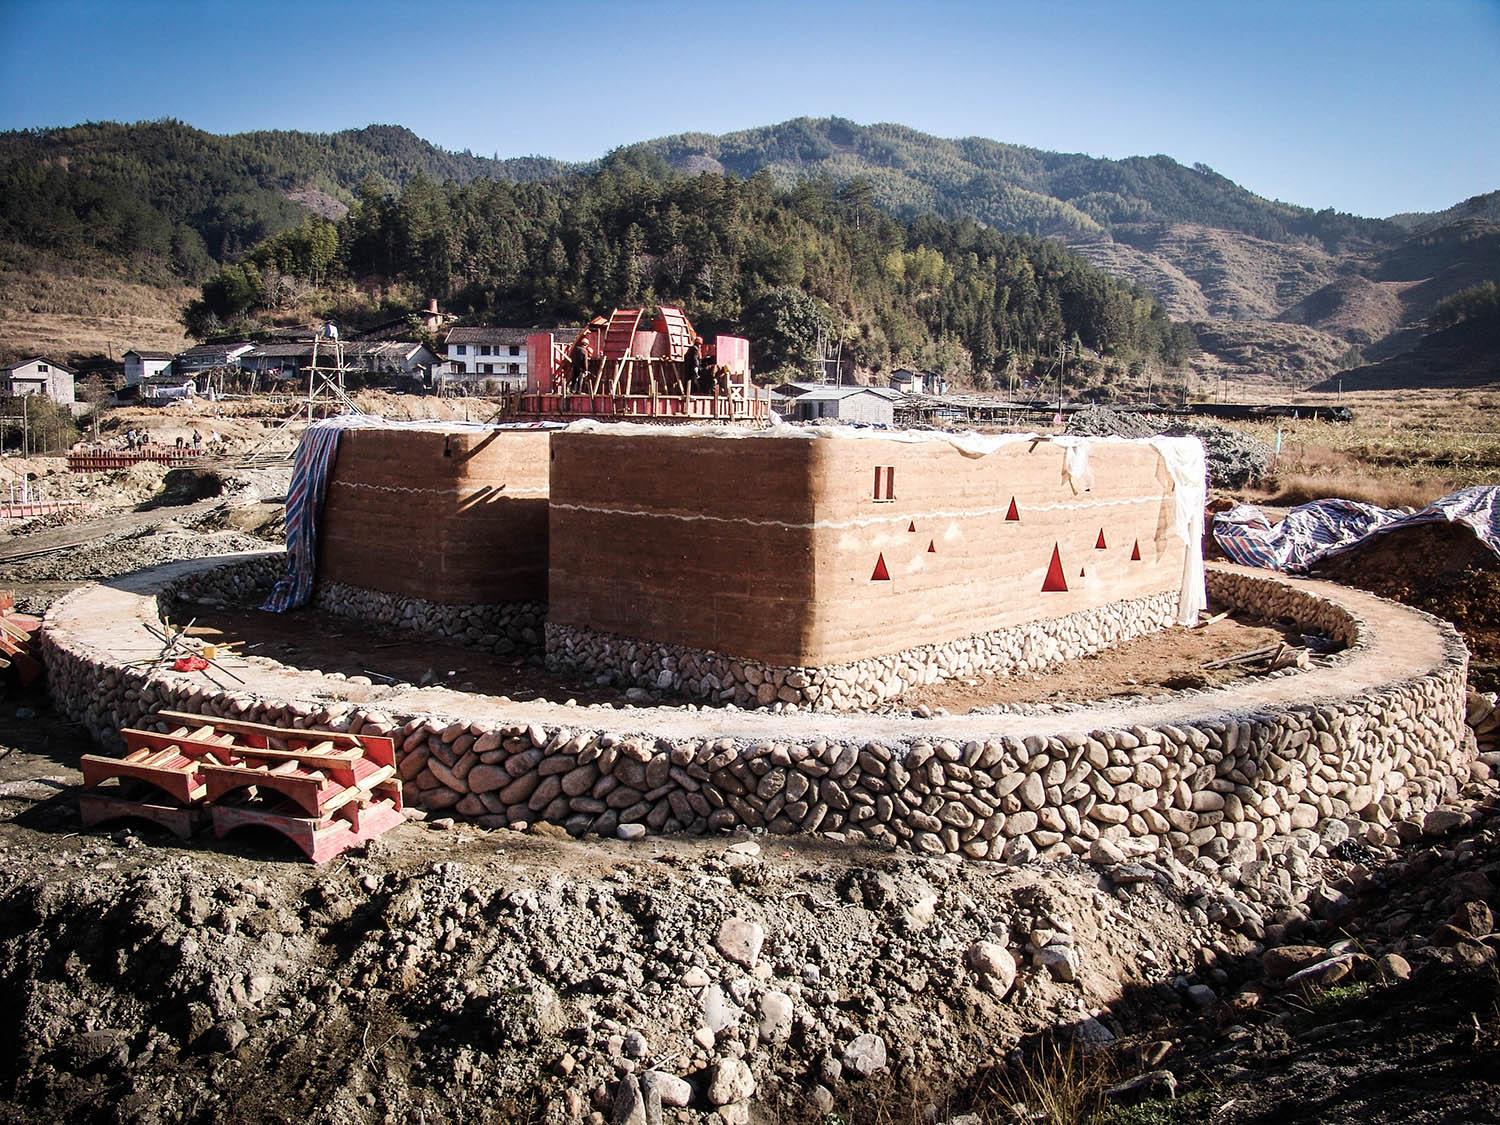 Guest House - construction of the stone foundations and the rammed earth walls